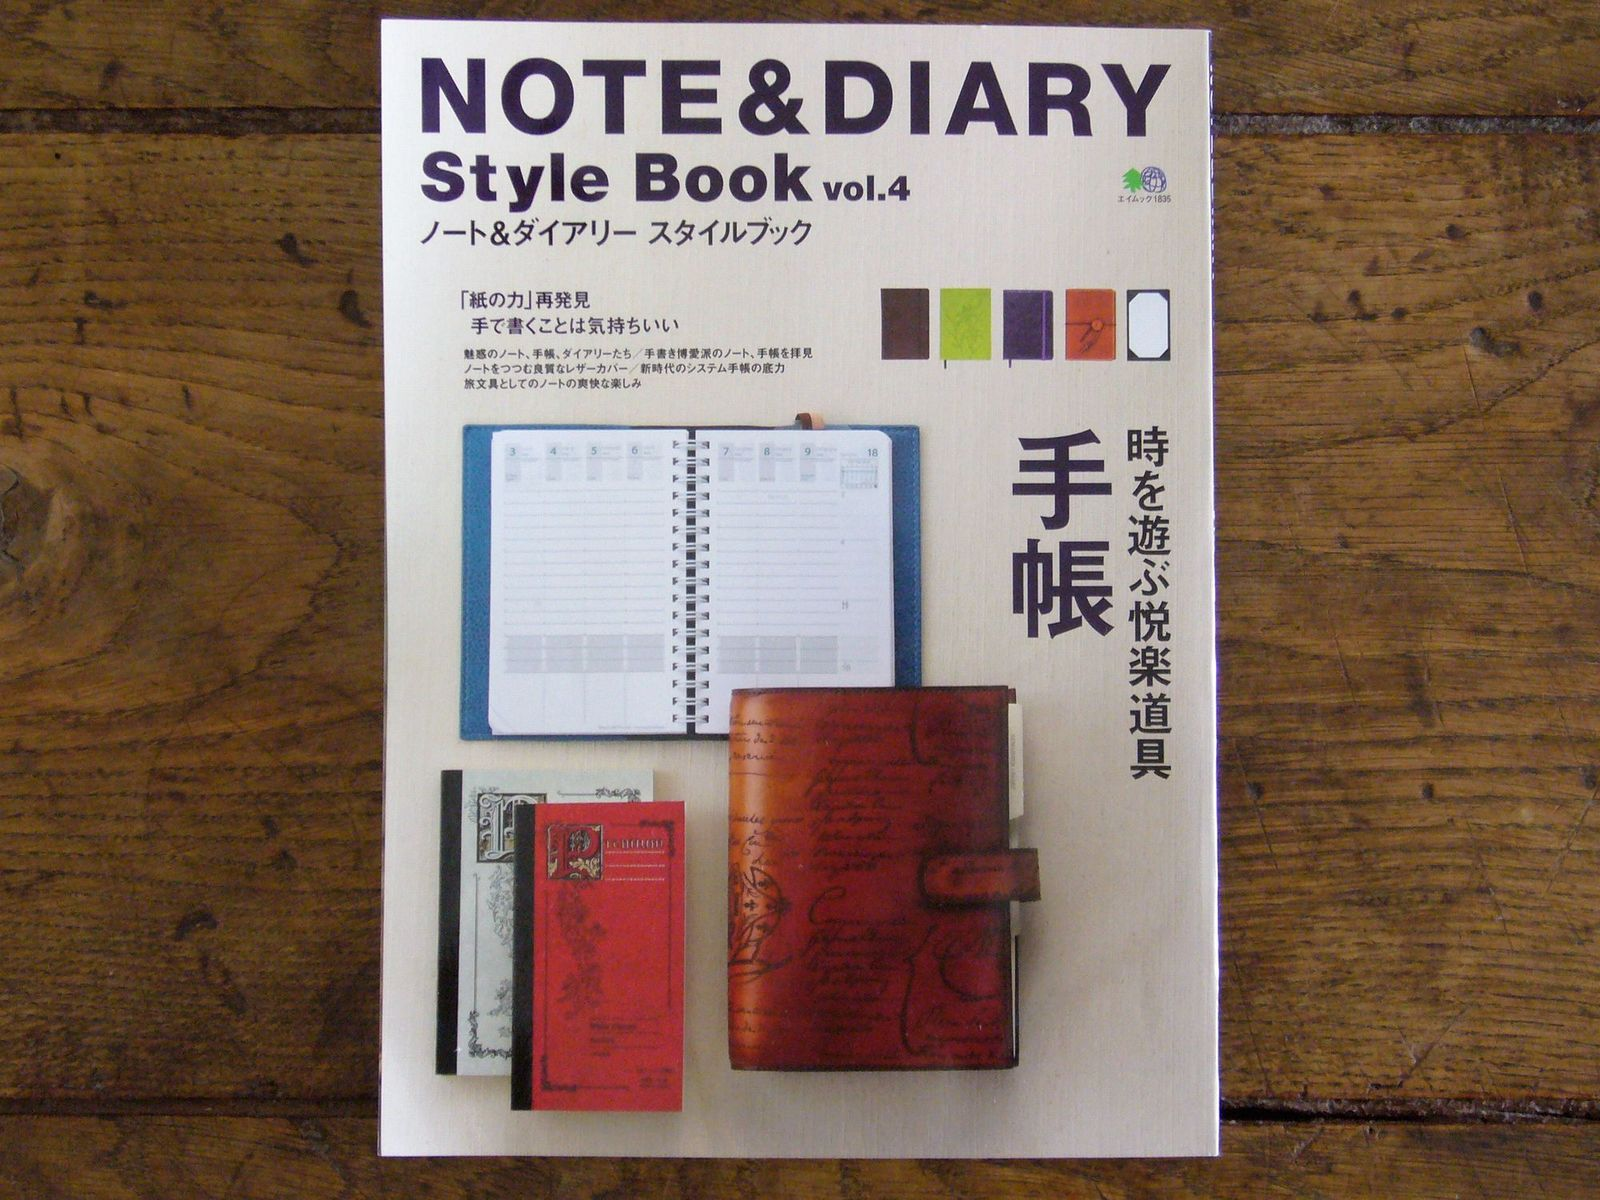 NOTE AND DIARY 1